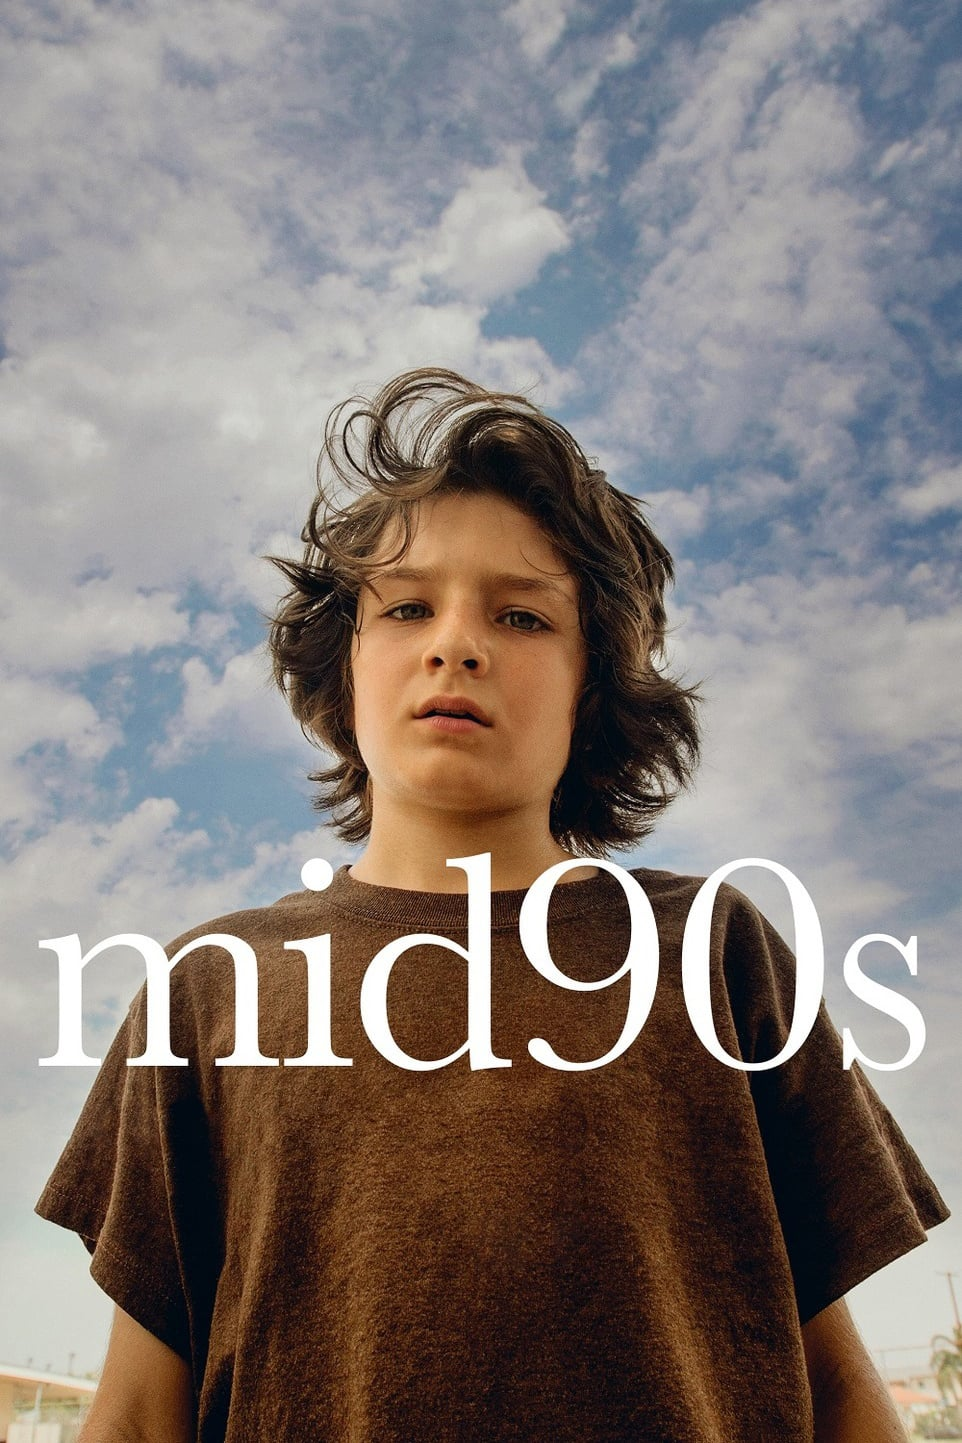 Cinematic+Releases:+Mid90s+(2018)+-+Reviewed